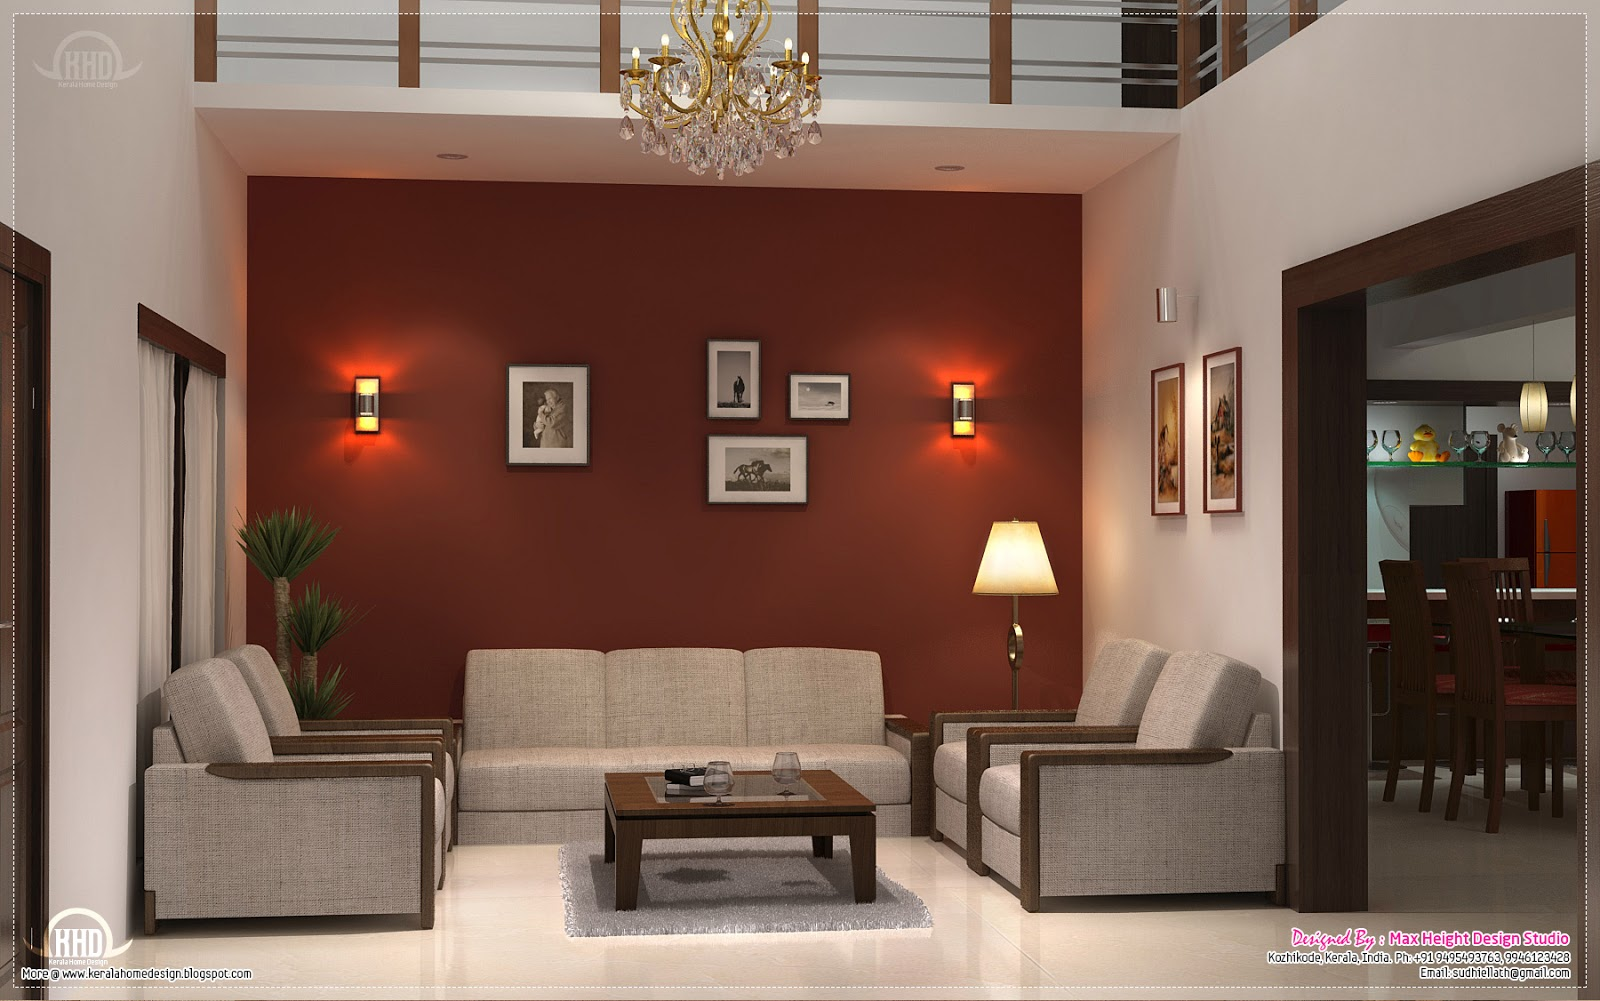 Home interior design ideas home kerala plans for Inside house ideas